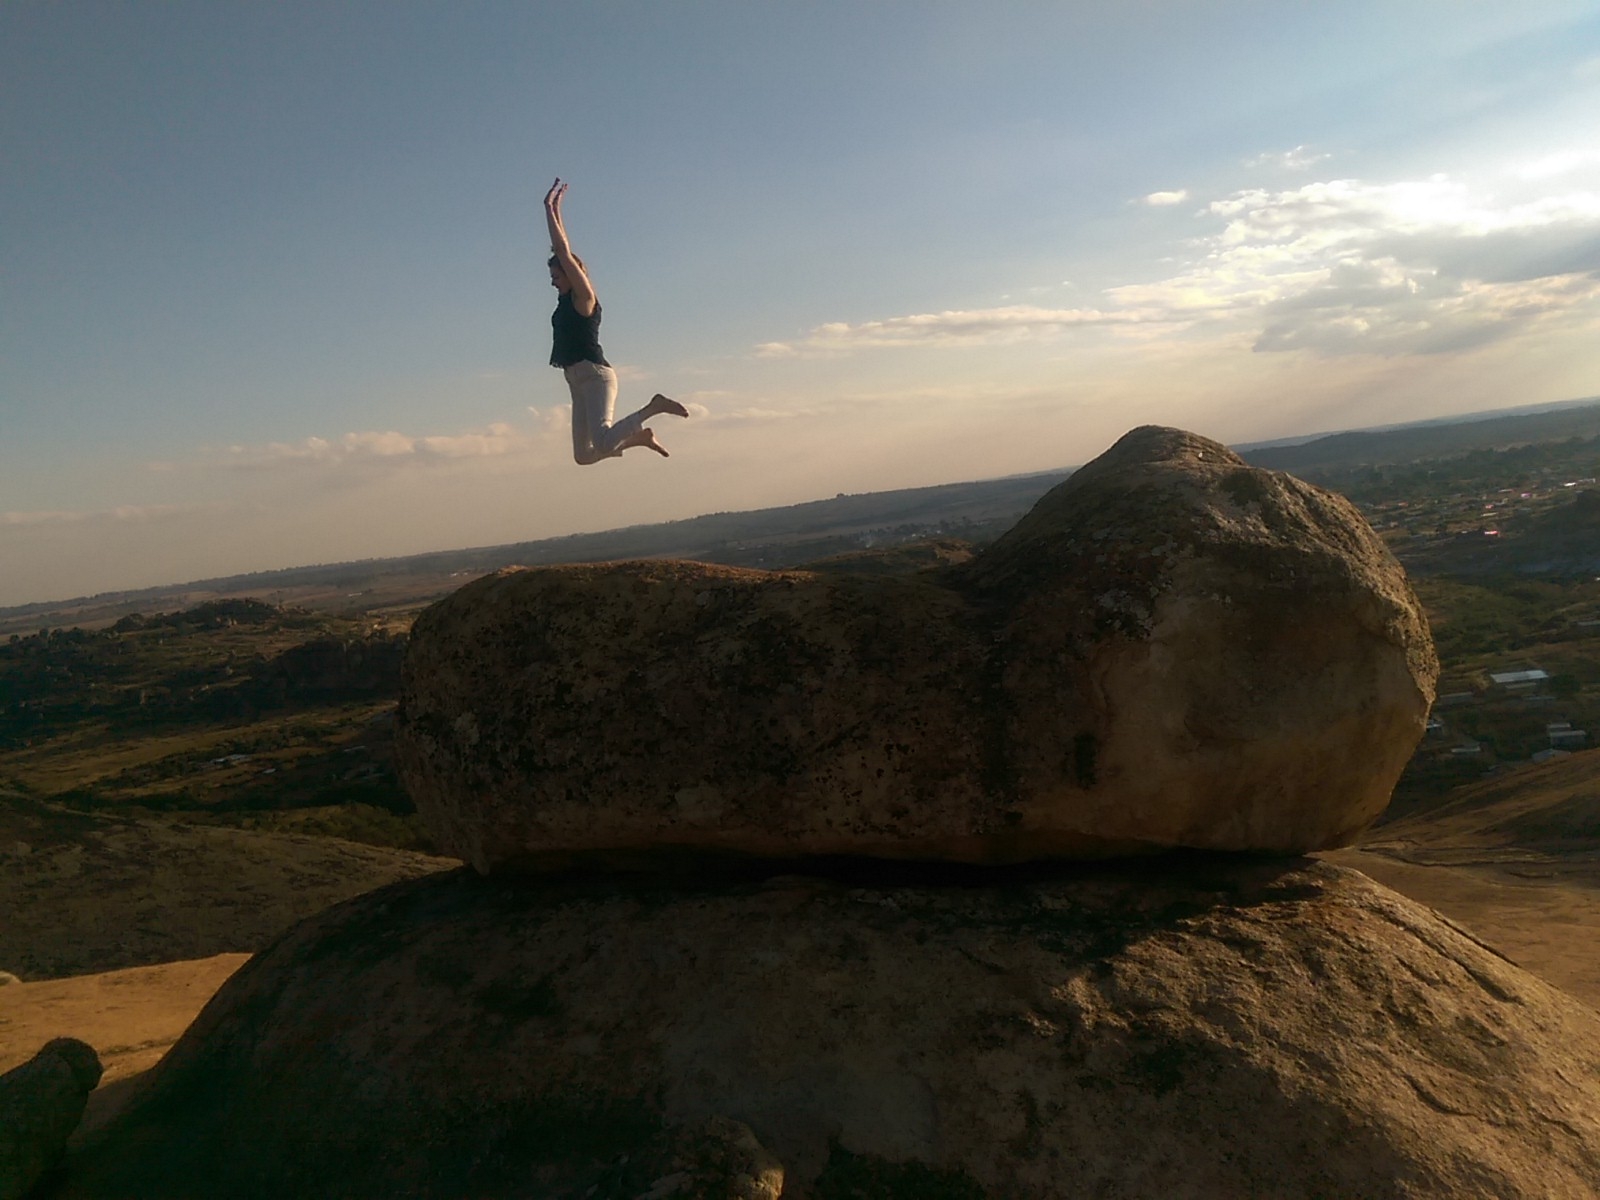 The silhouette of a woman jumping with her arms above her head and legs behind her from a large rock with an epic view